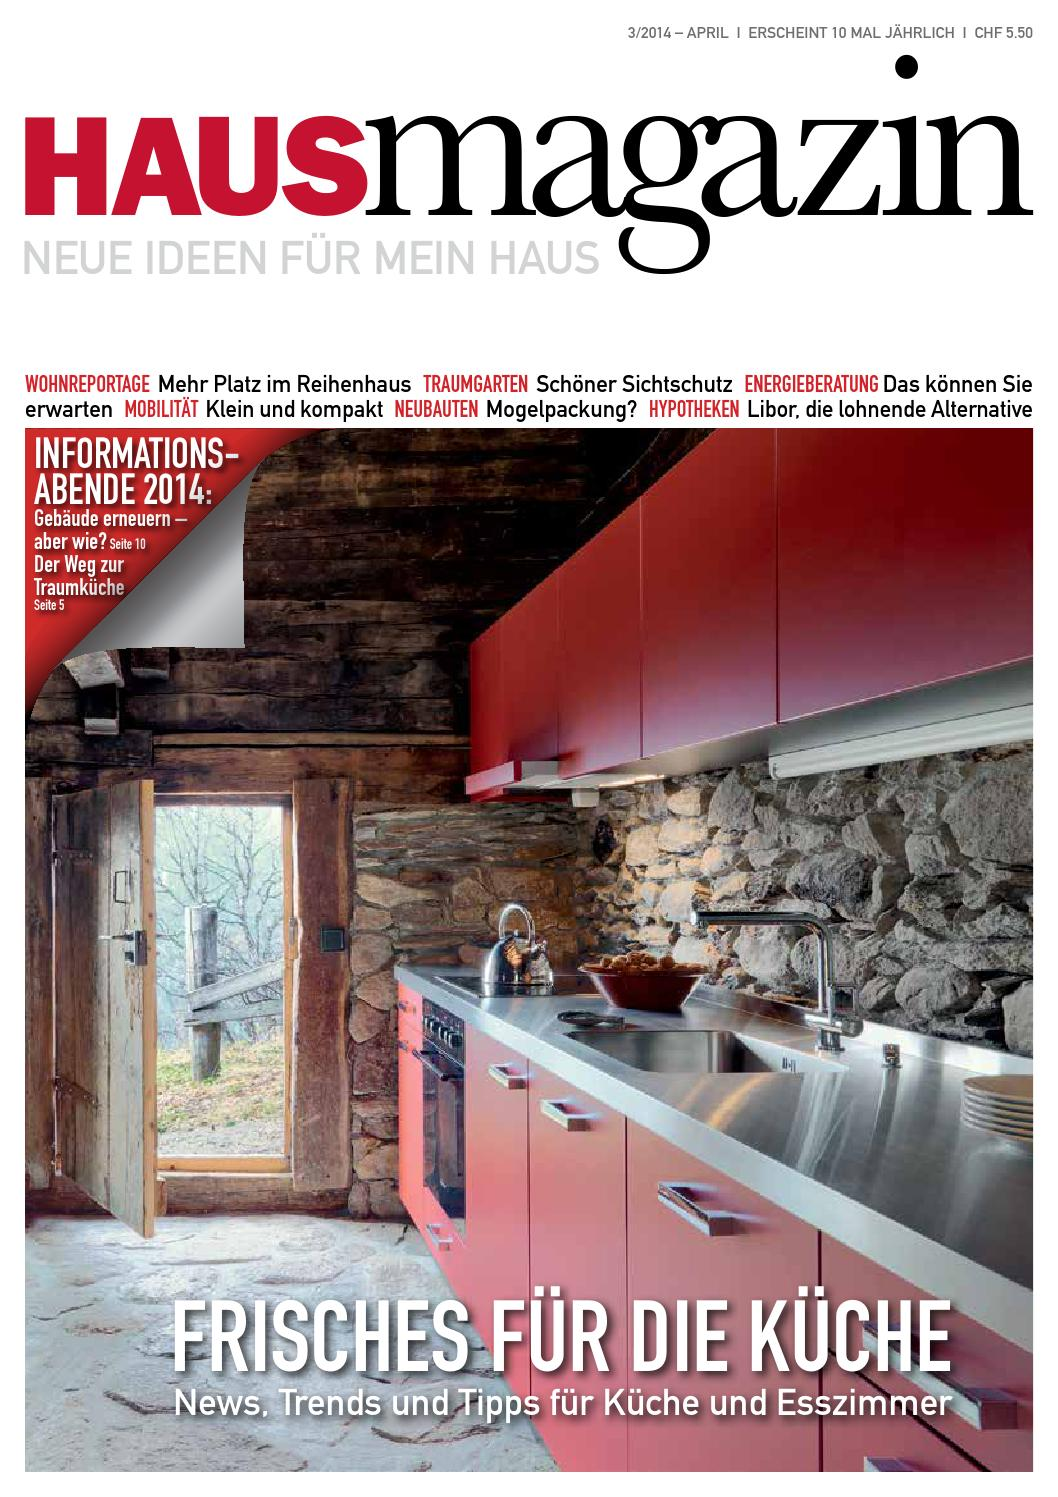 Hausmagazin April 2014 by HAUS MAGAZIN - issuu